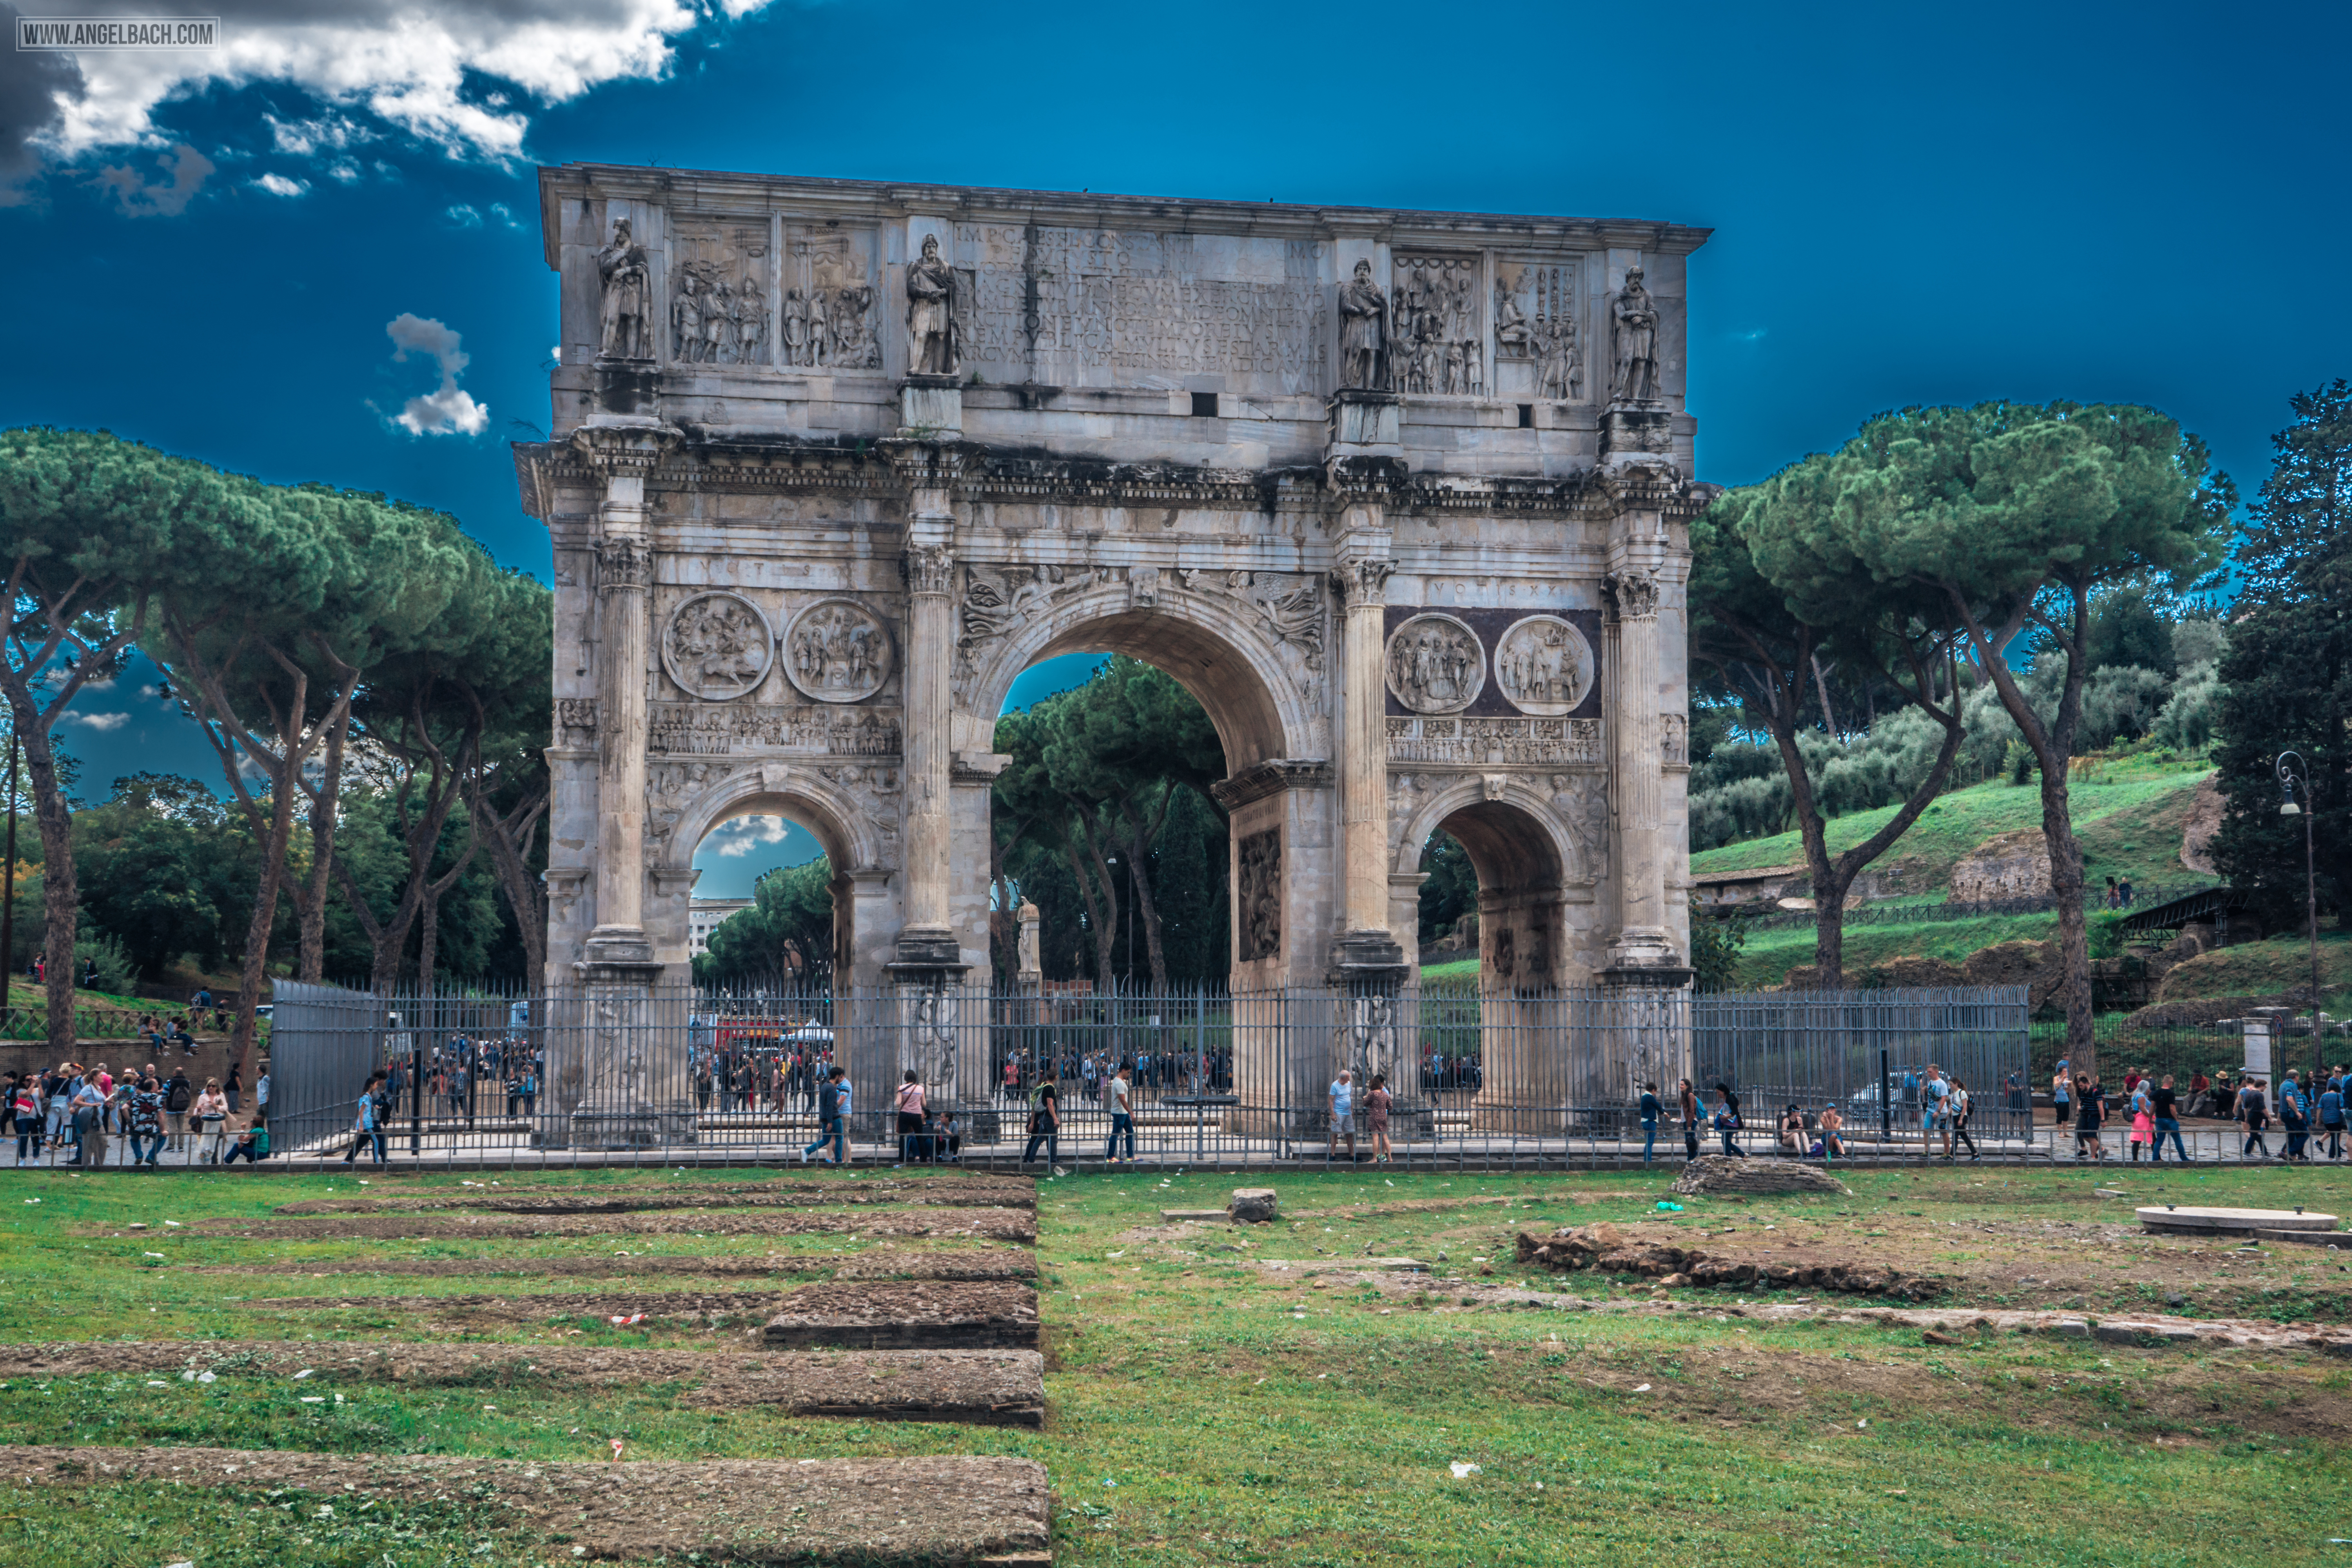 Rome, Cityscape, Leading lines, Street photography, Architecture Photography, Arch of Constantine